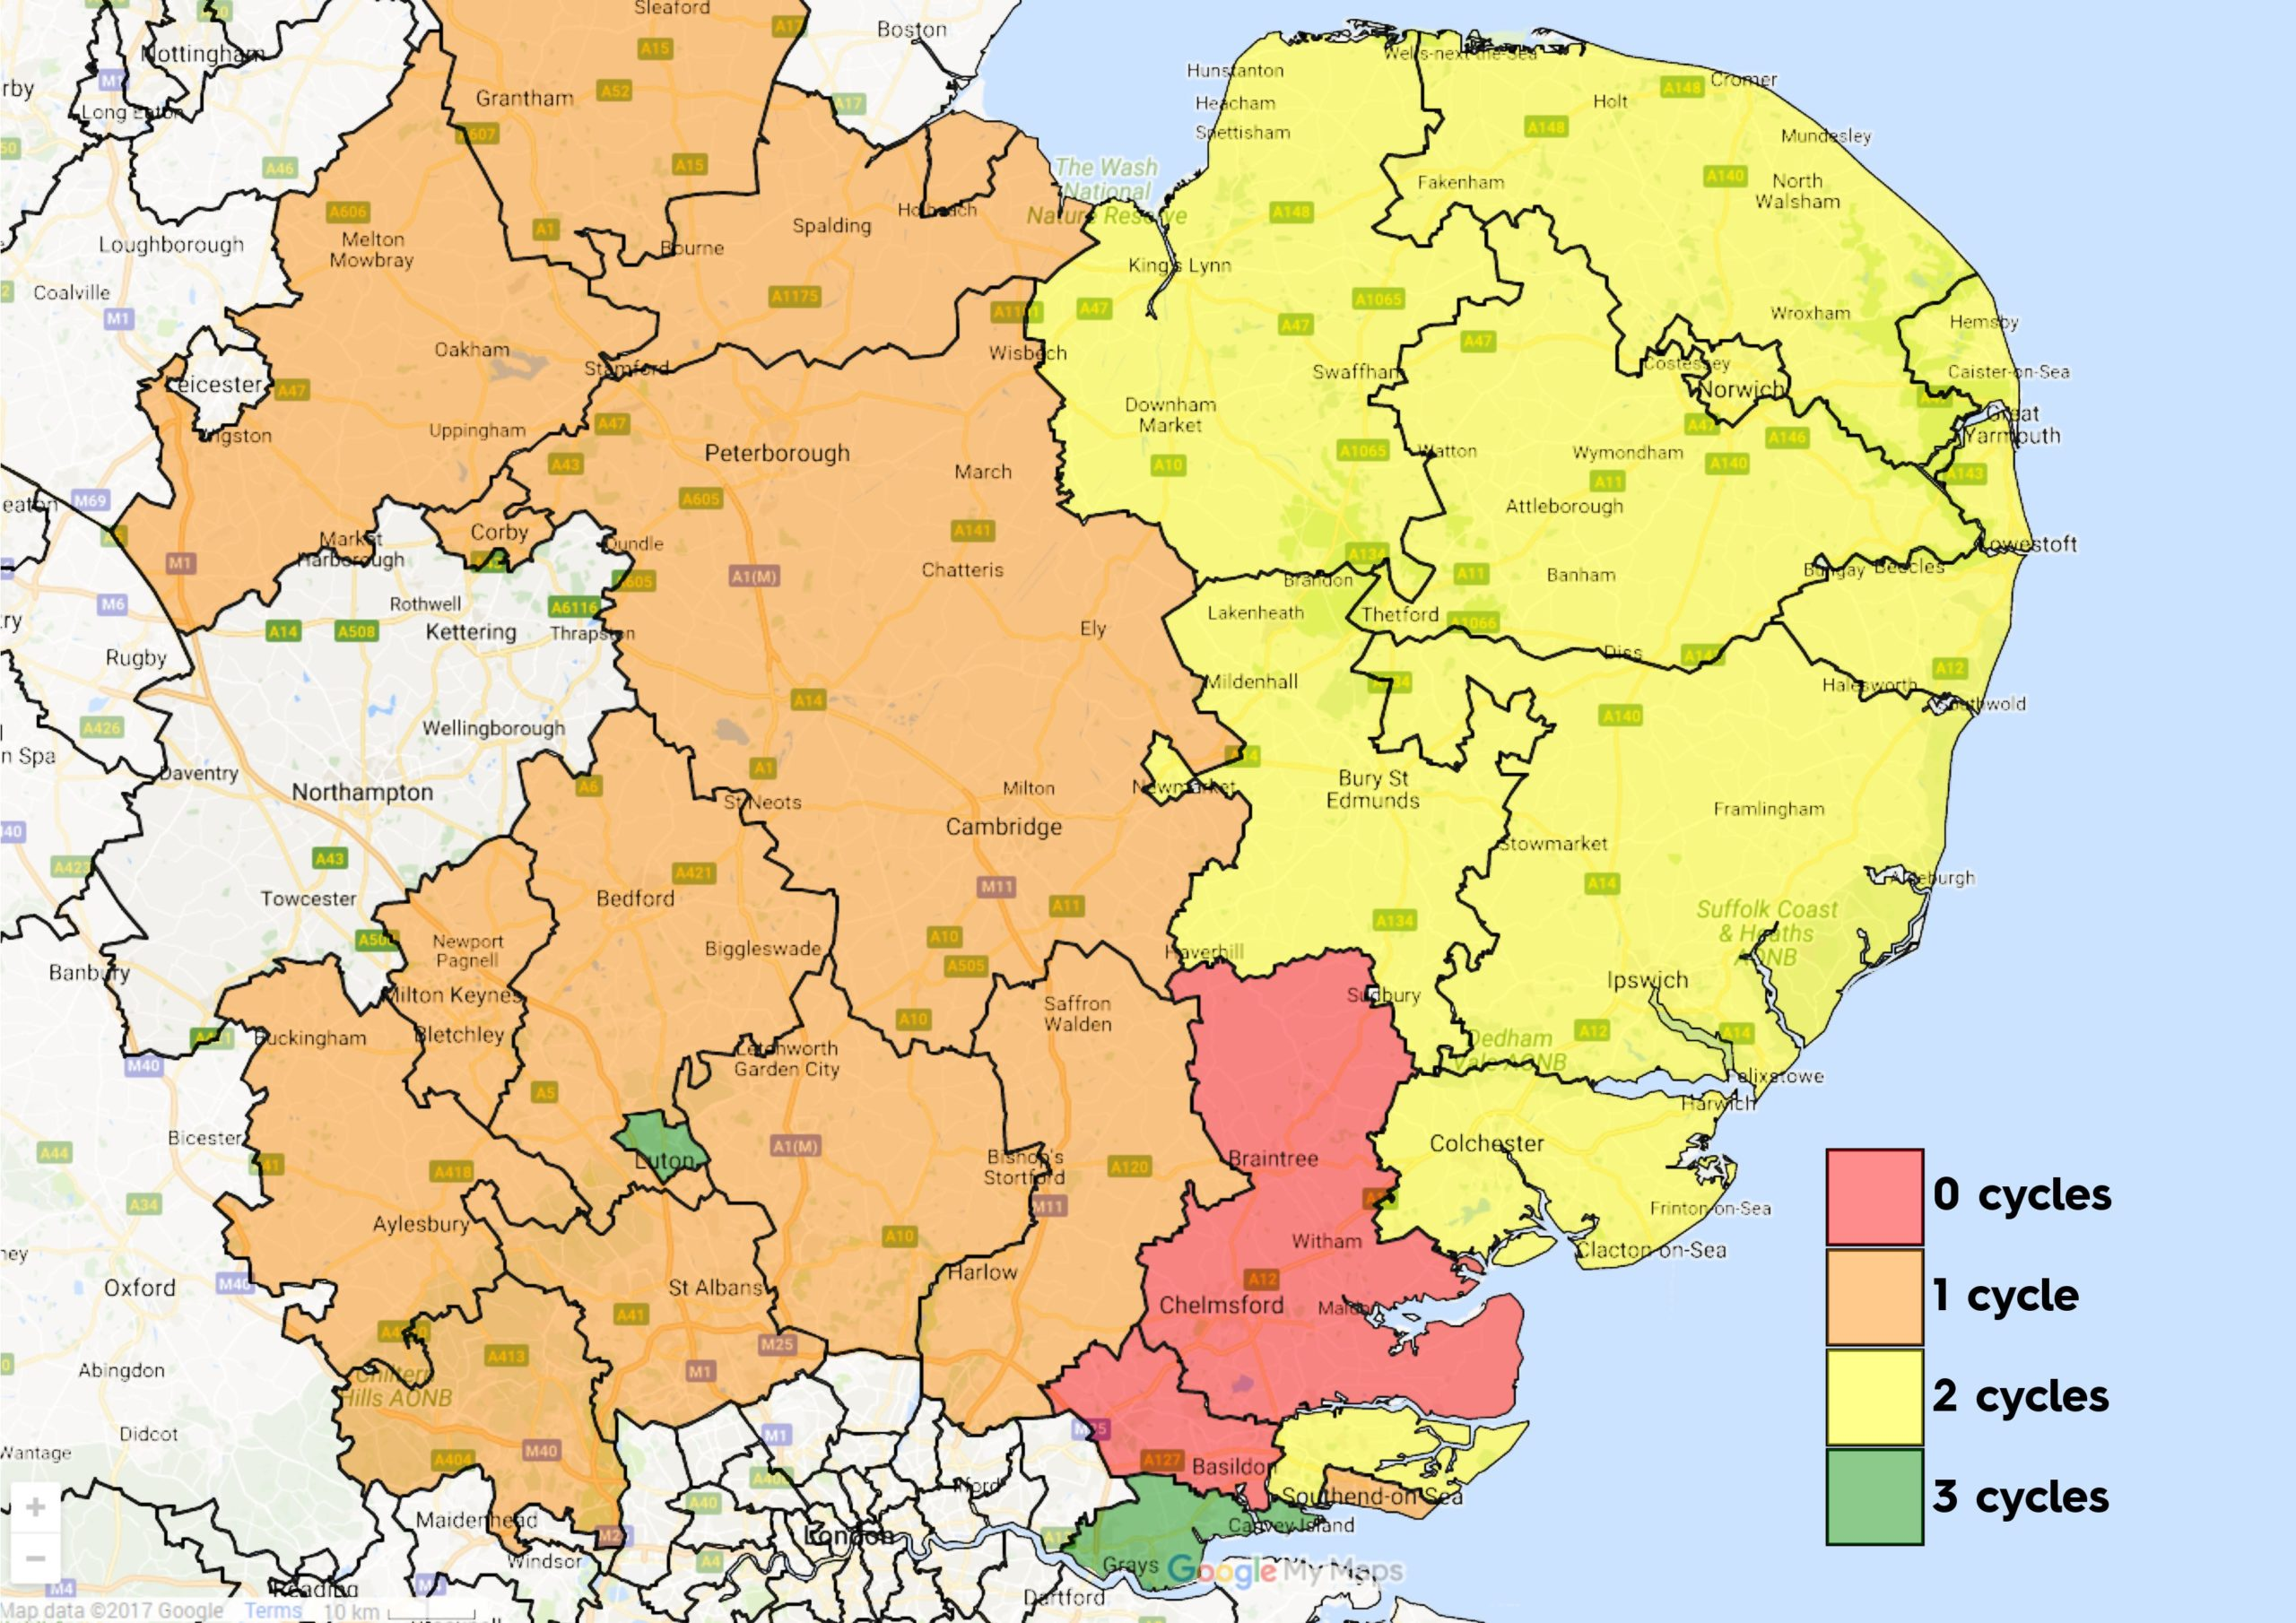 NHS IVF Funding Map for East of England (Jul 2021)